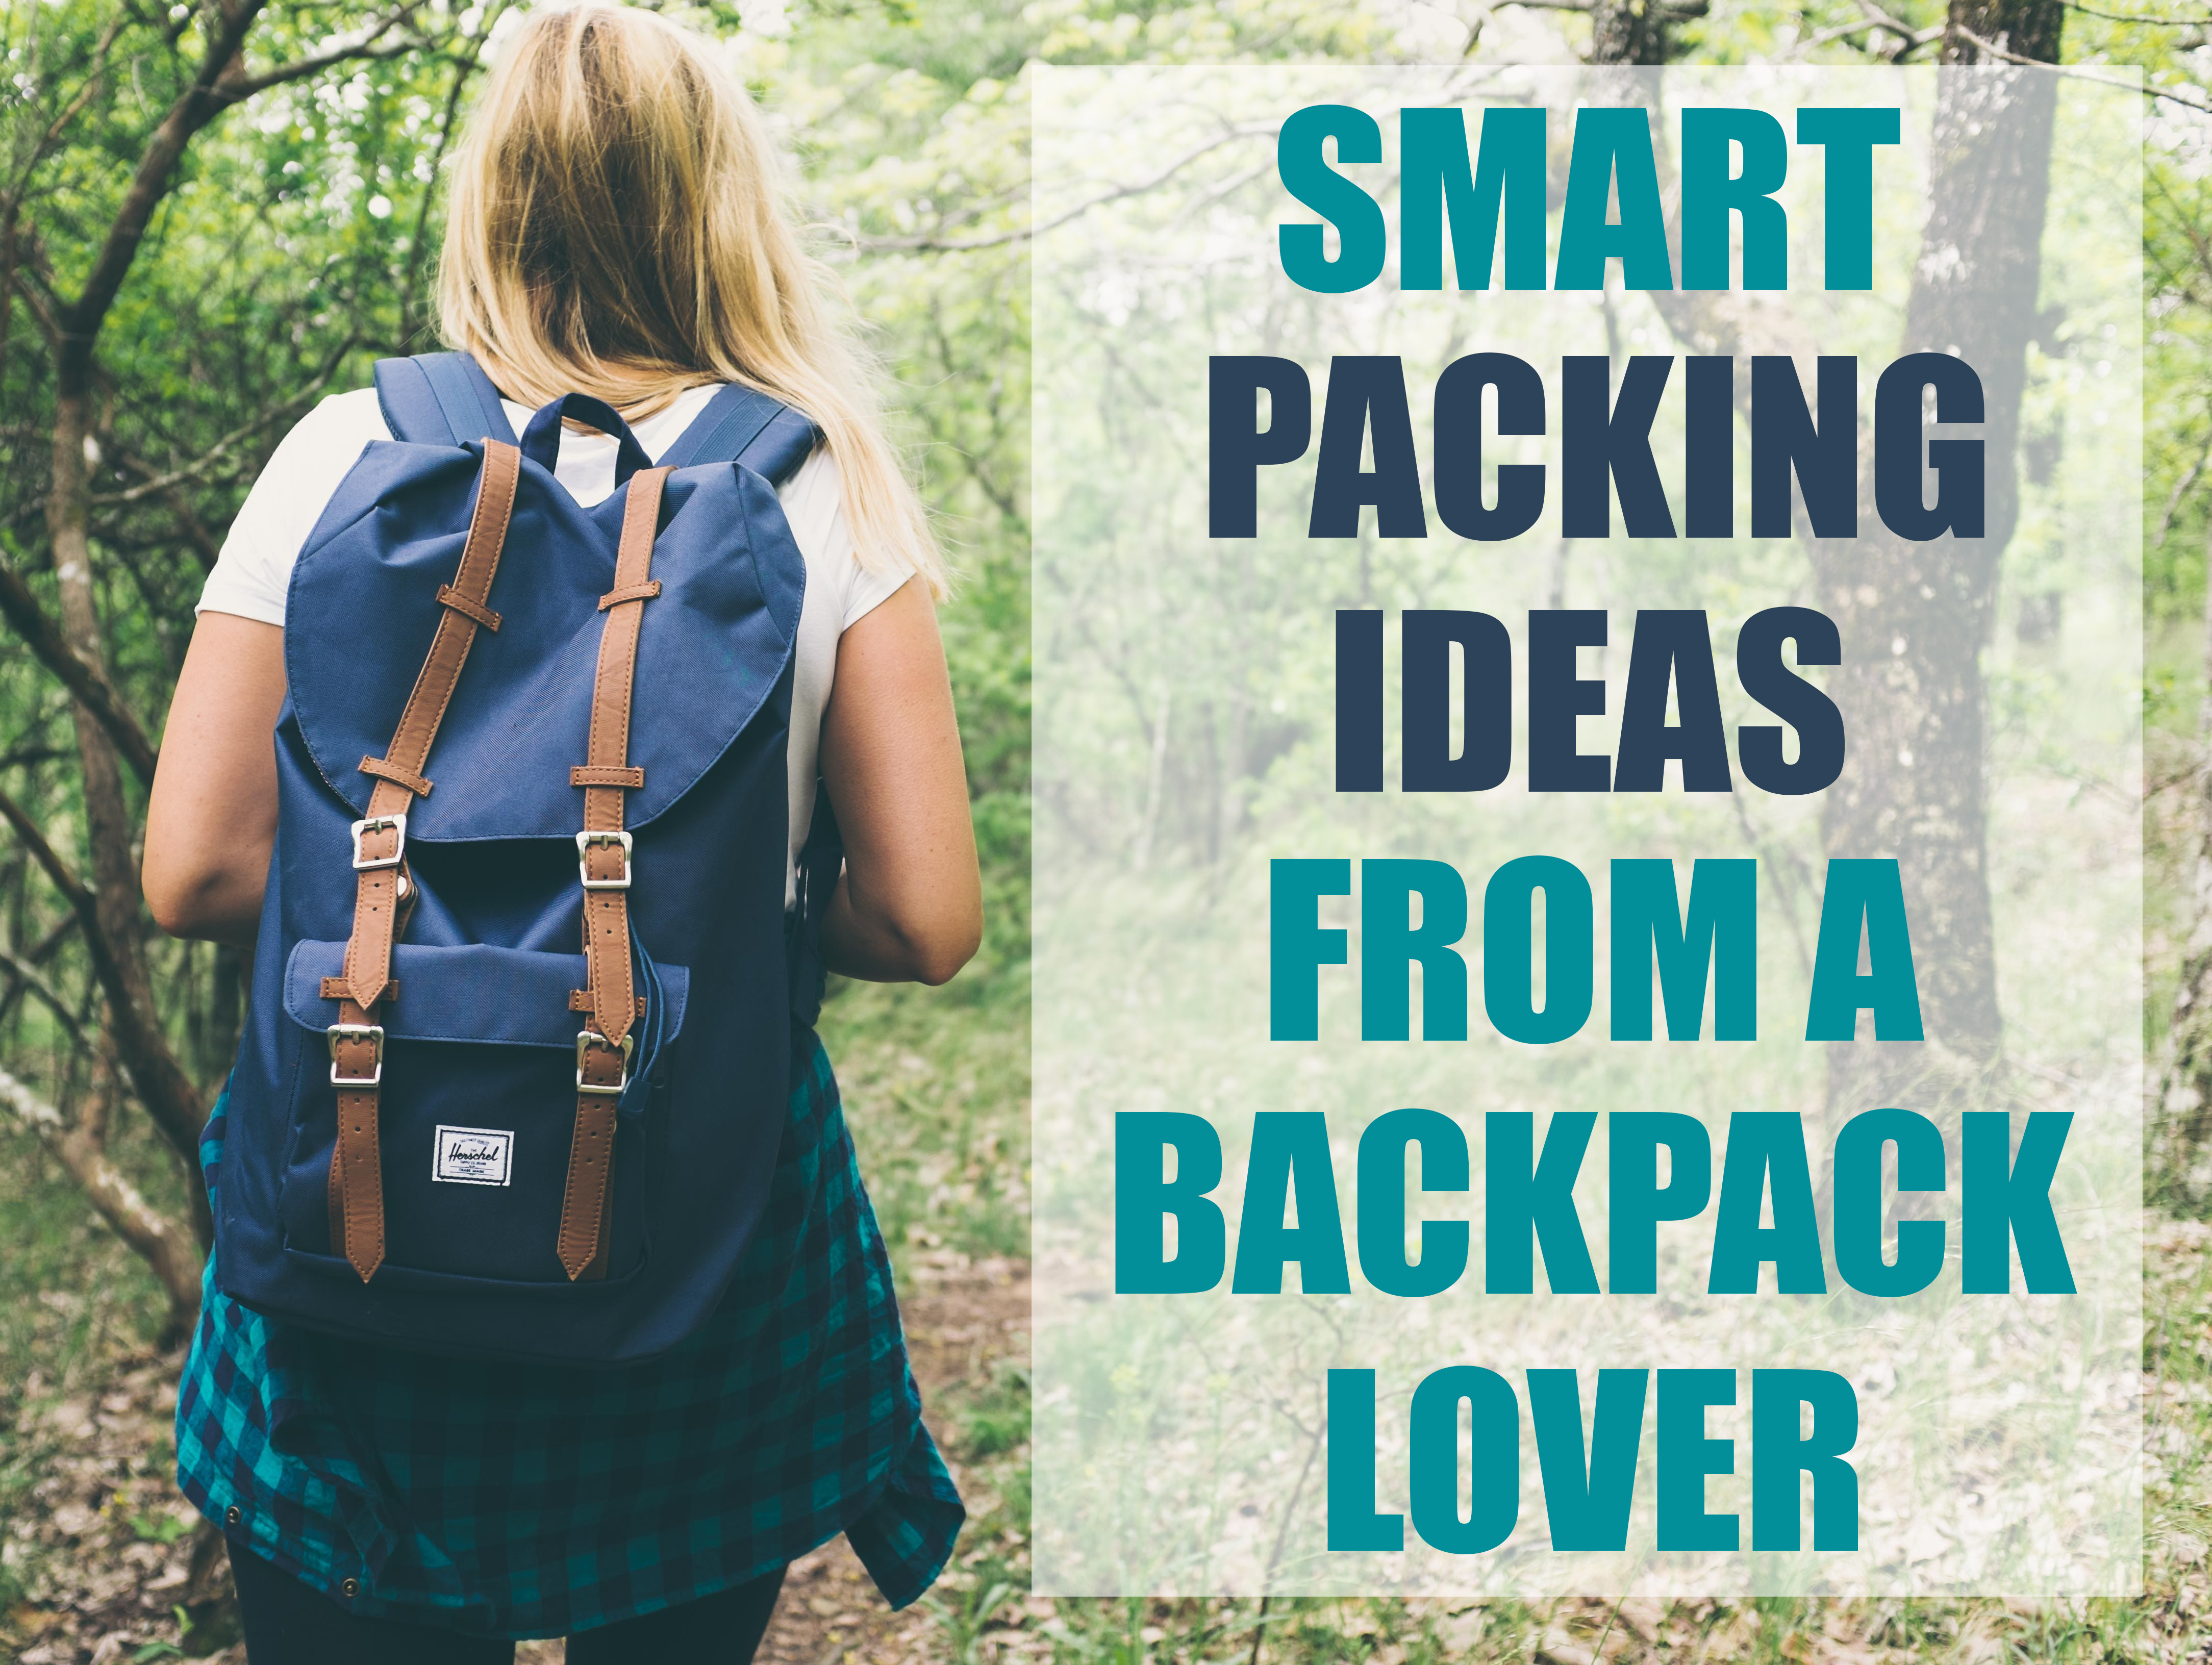 Smart packing ideas from a backpack lover